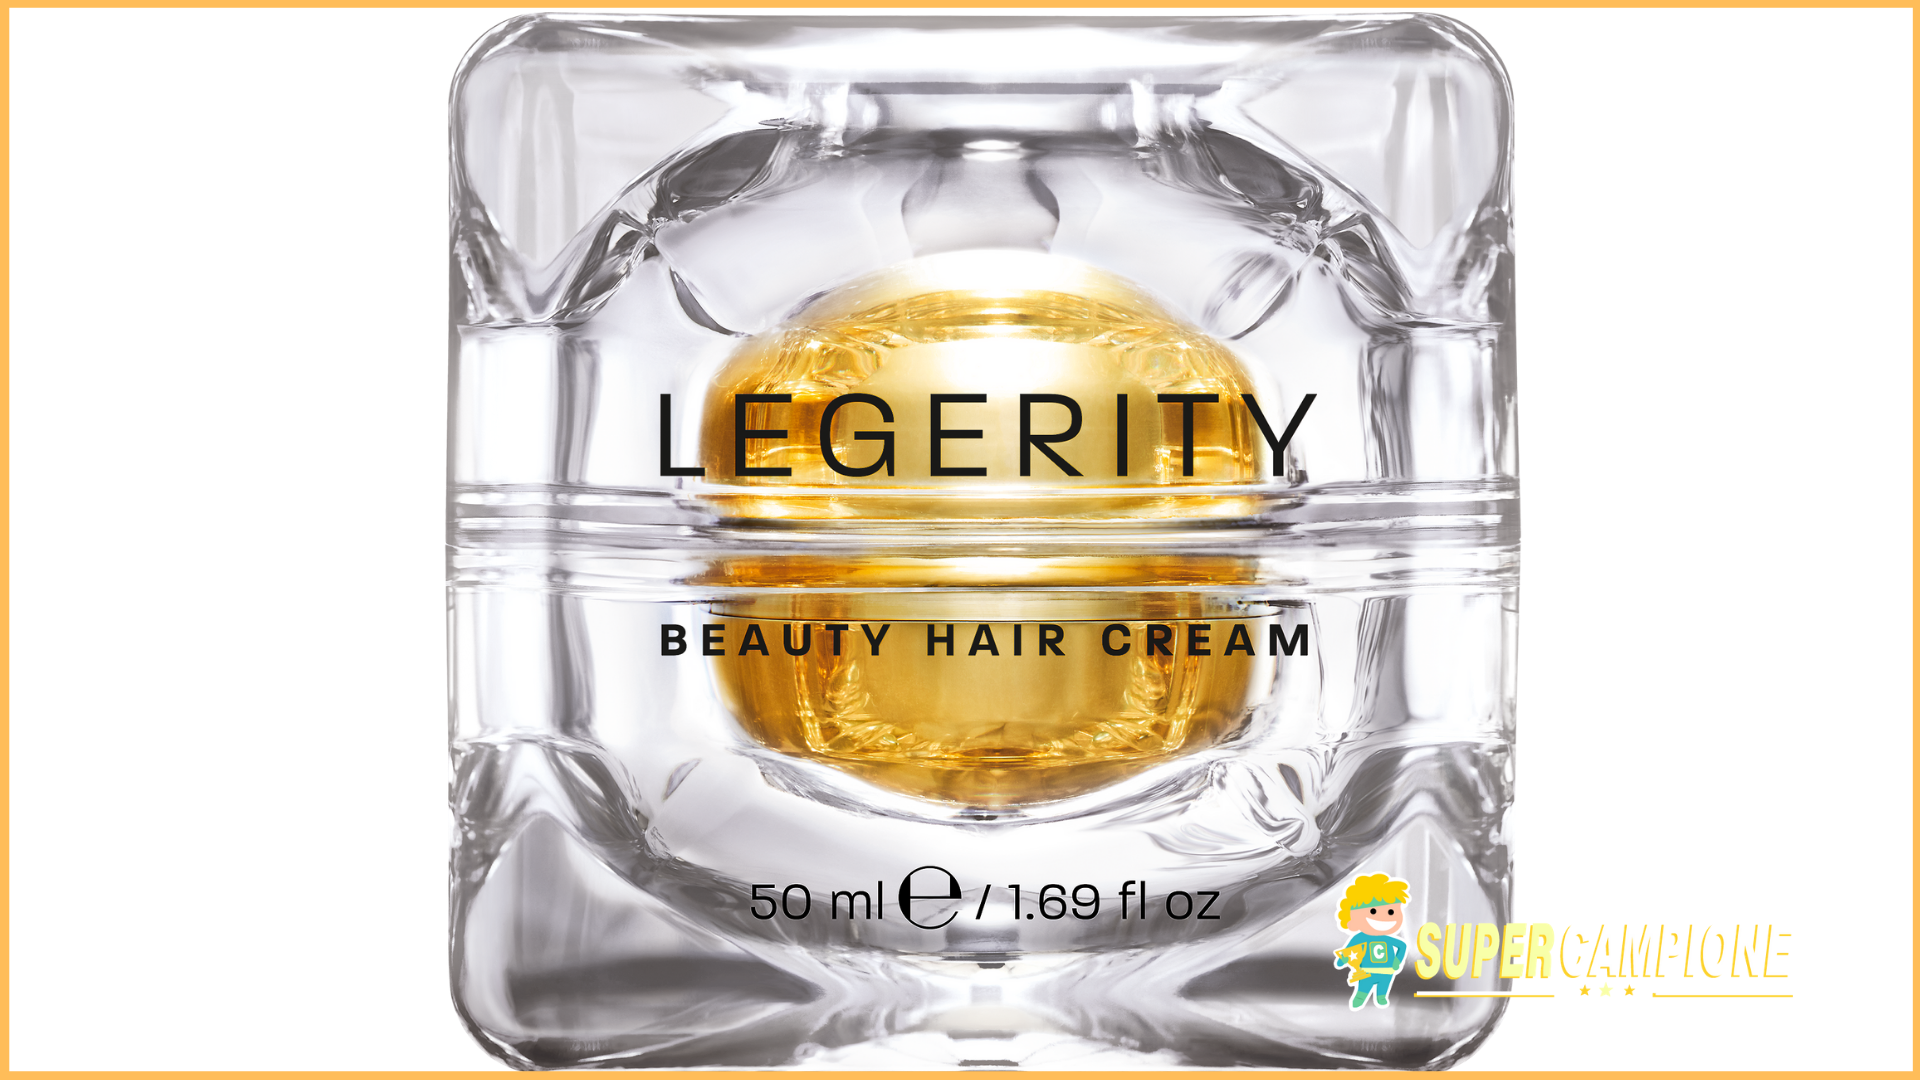 Diventa tester Hair Beauty Cream Legerity